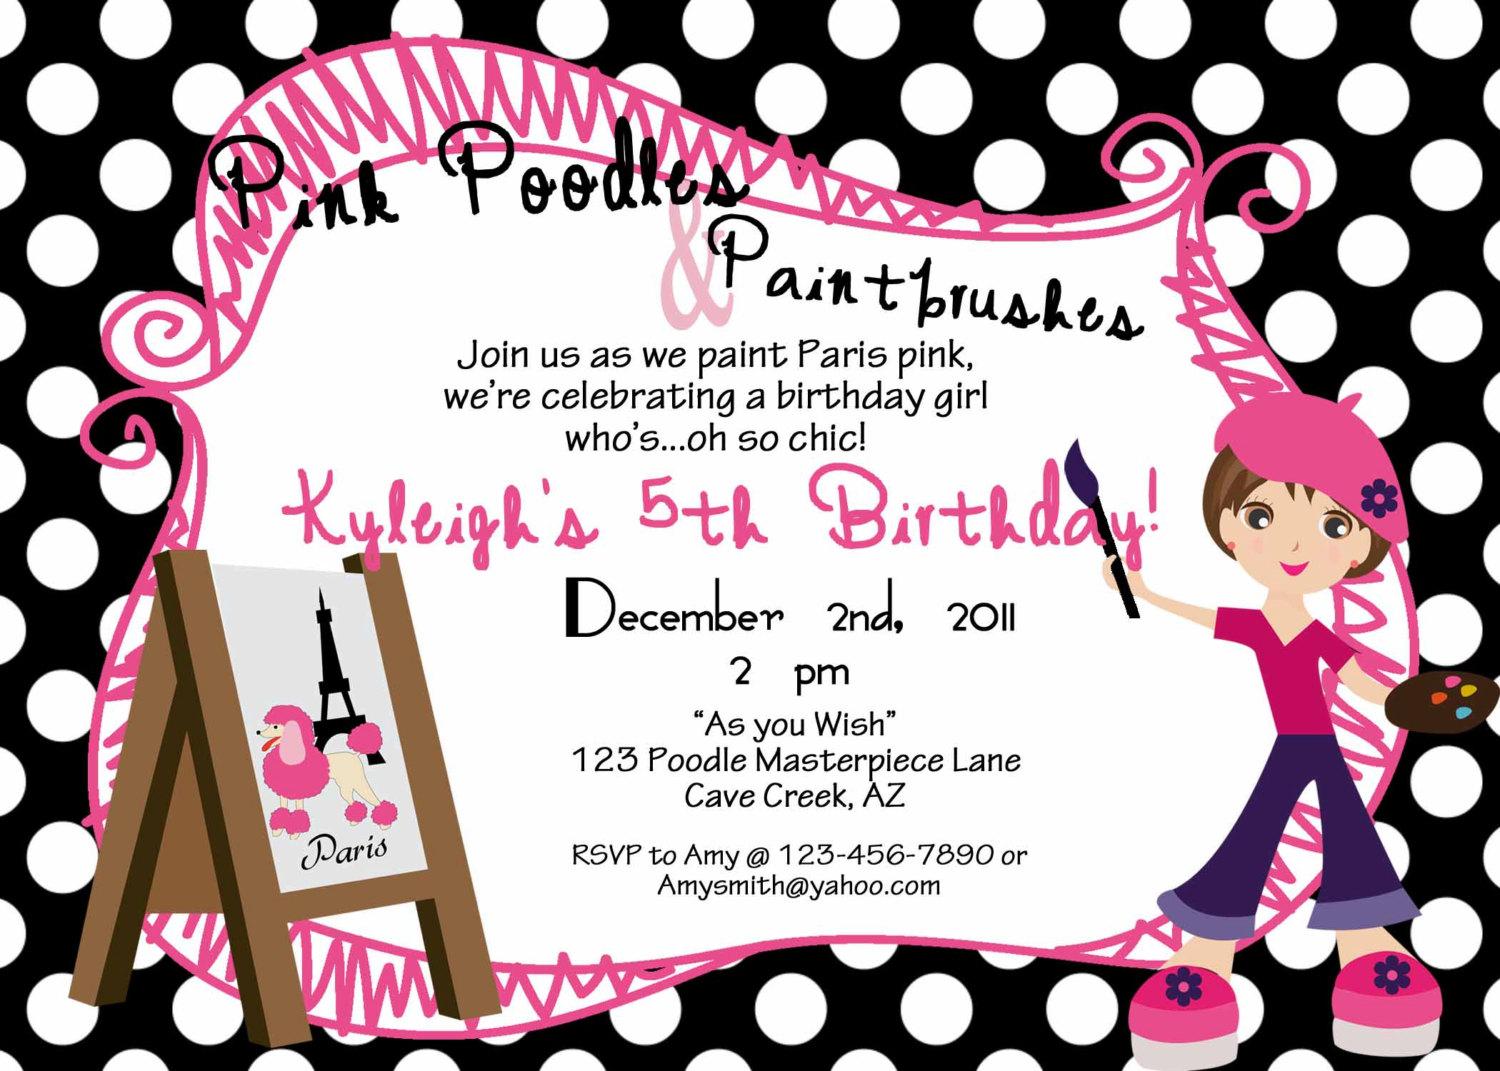 free invitation cards for birthday party ; free_invitation_cards_for_birthday_party_4